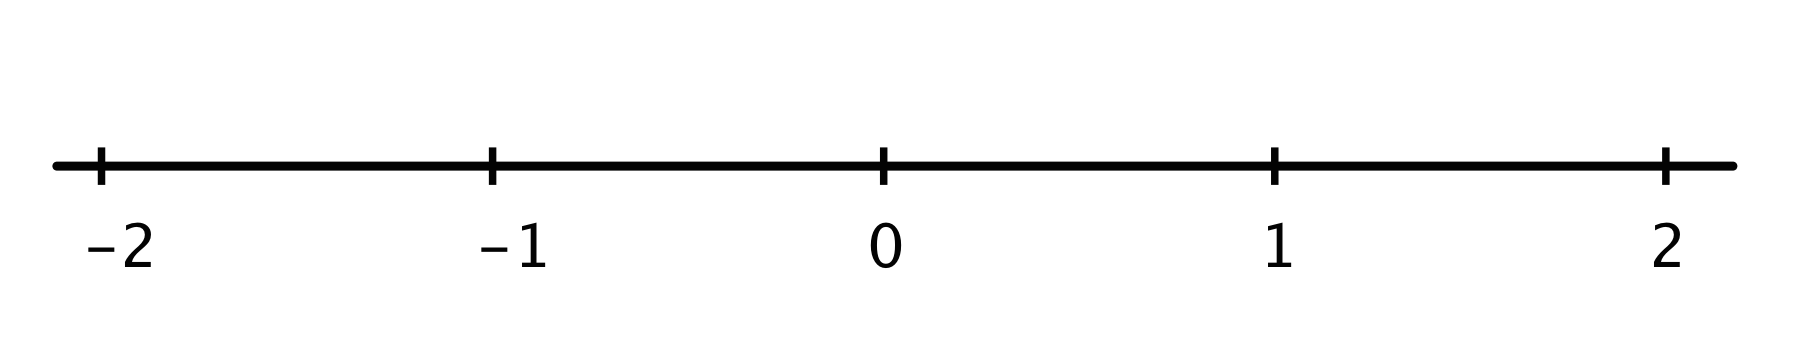 A number line with 5 evenly spaced tick marks, labeled negative 2 through 2.